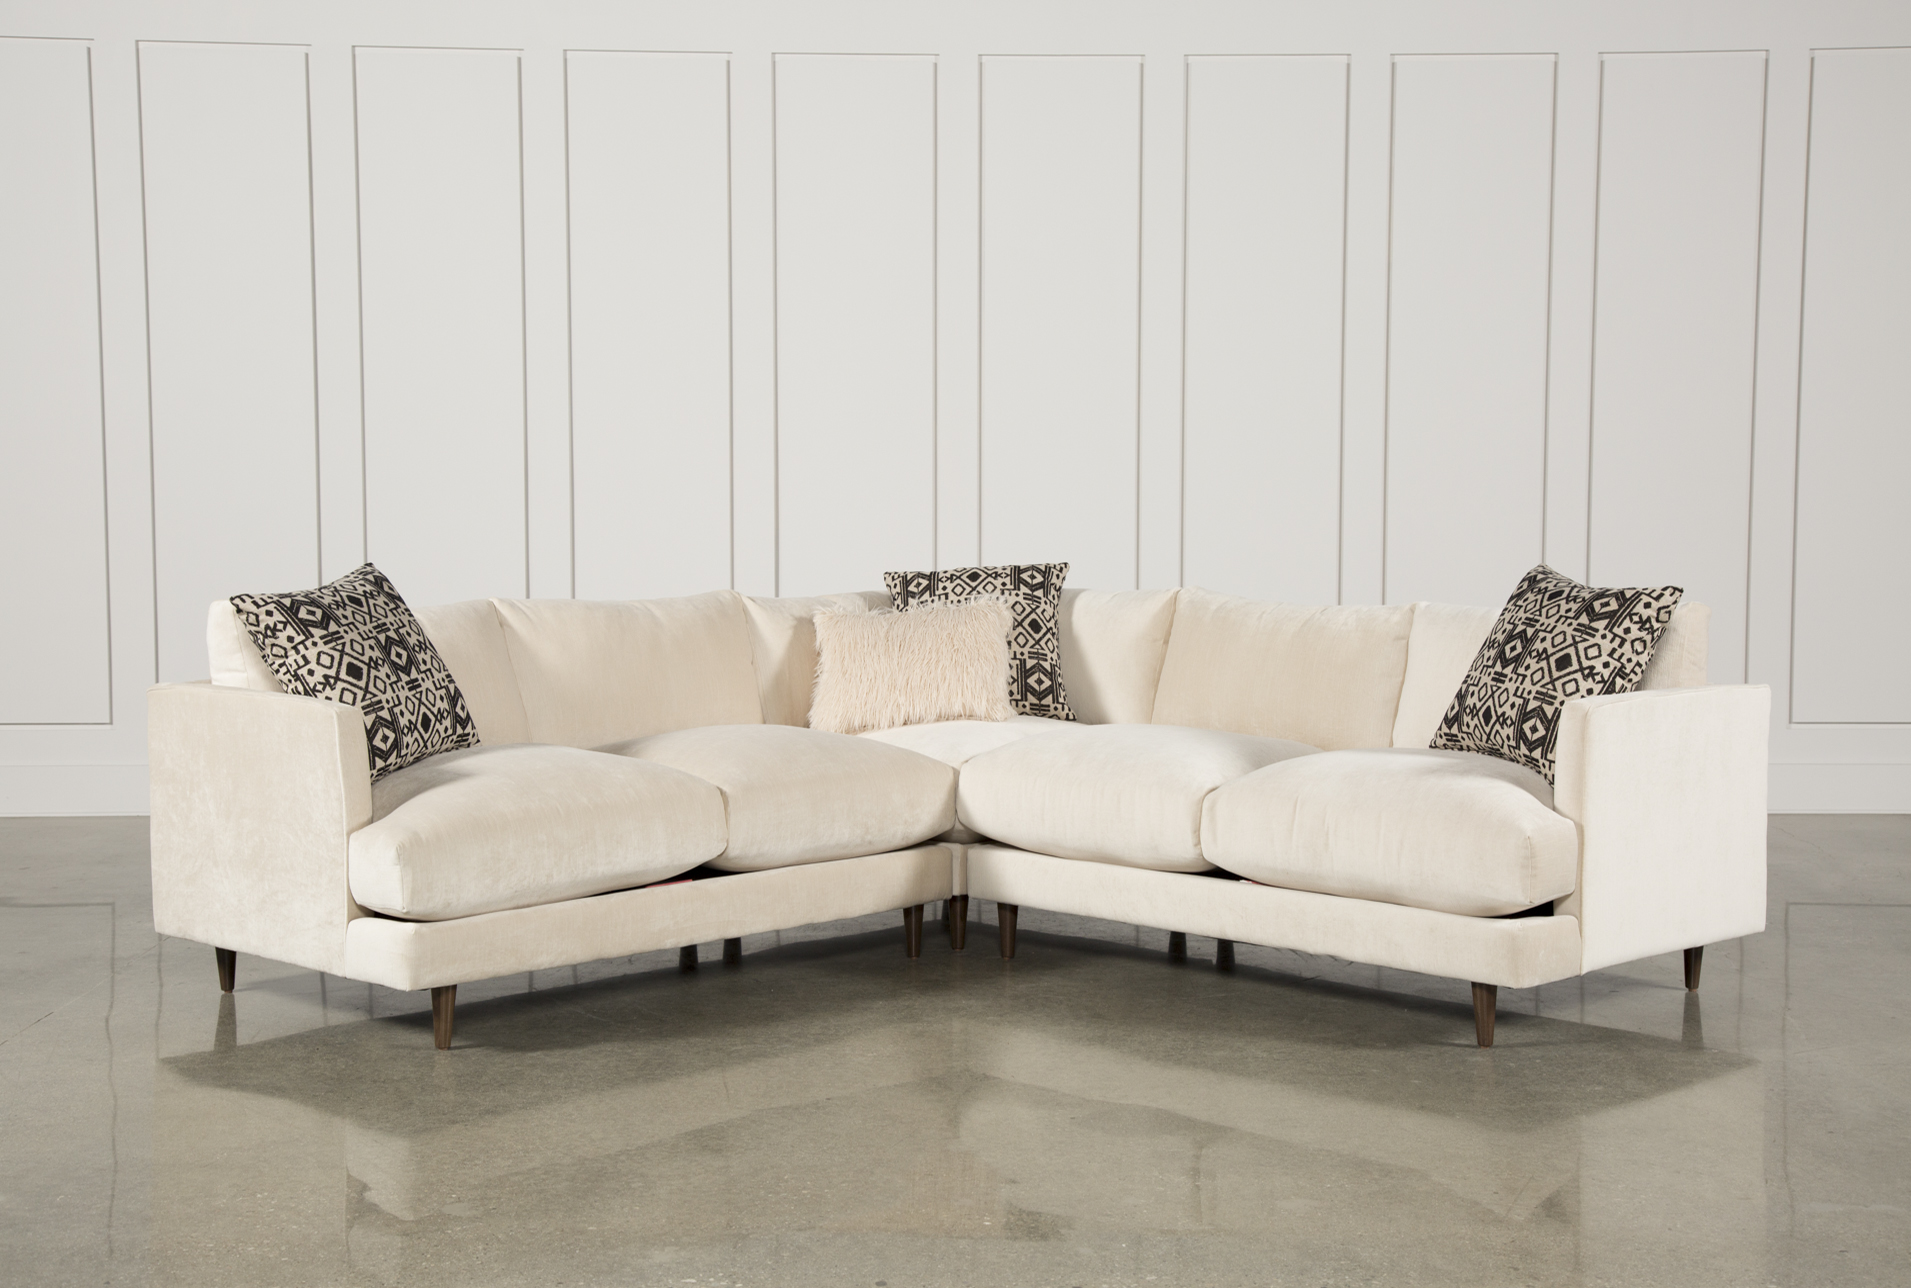 Garage Added To Cart Adeline Piece Sectional Living Spaces Living Spaces  Couch Quality Living Spaces Couch